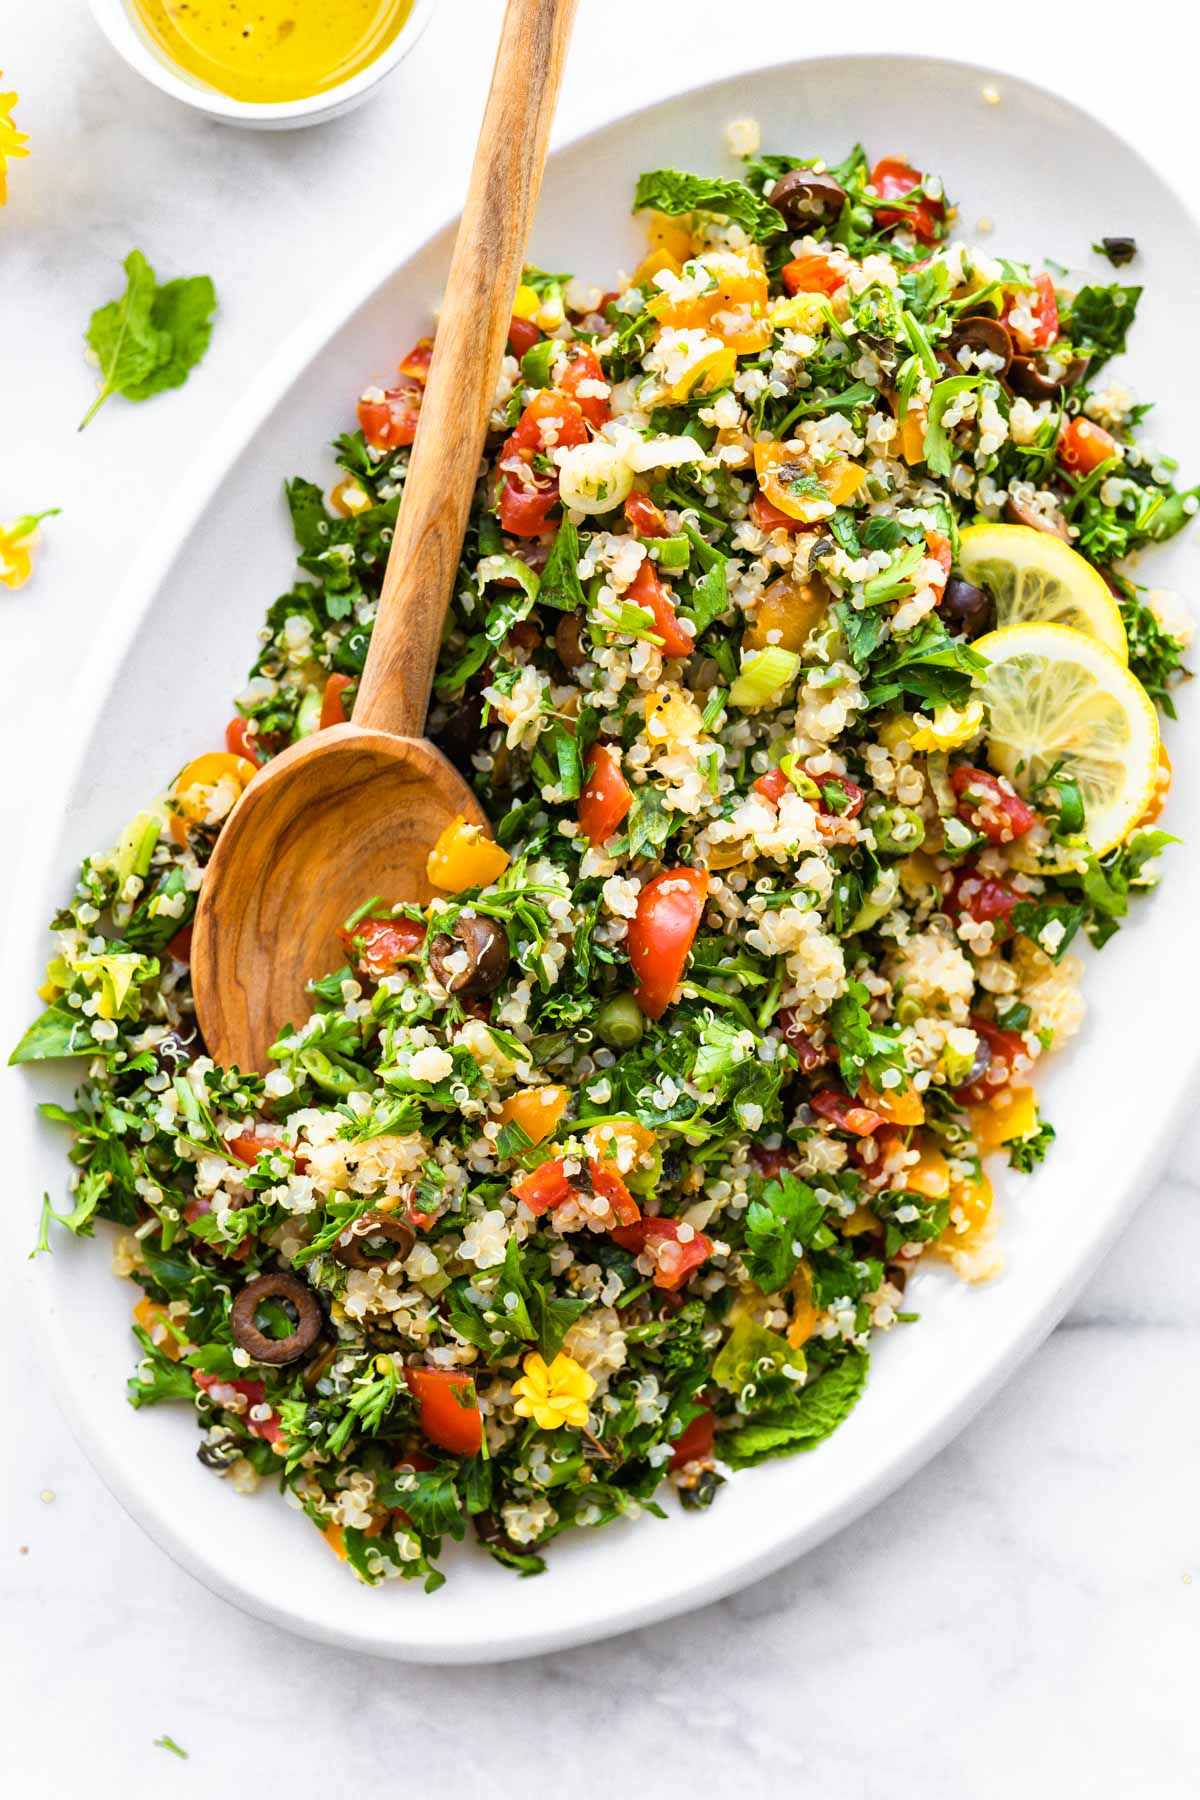 beautiful fresh tabouli salad on white platter with wooden spoon for serving